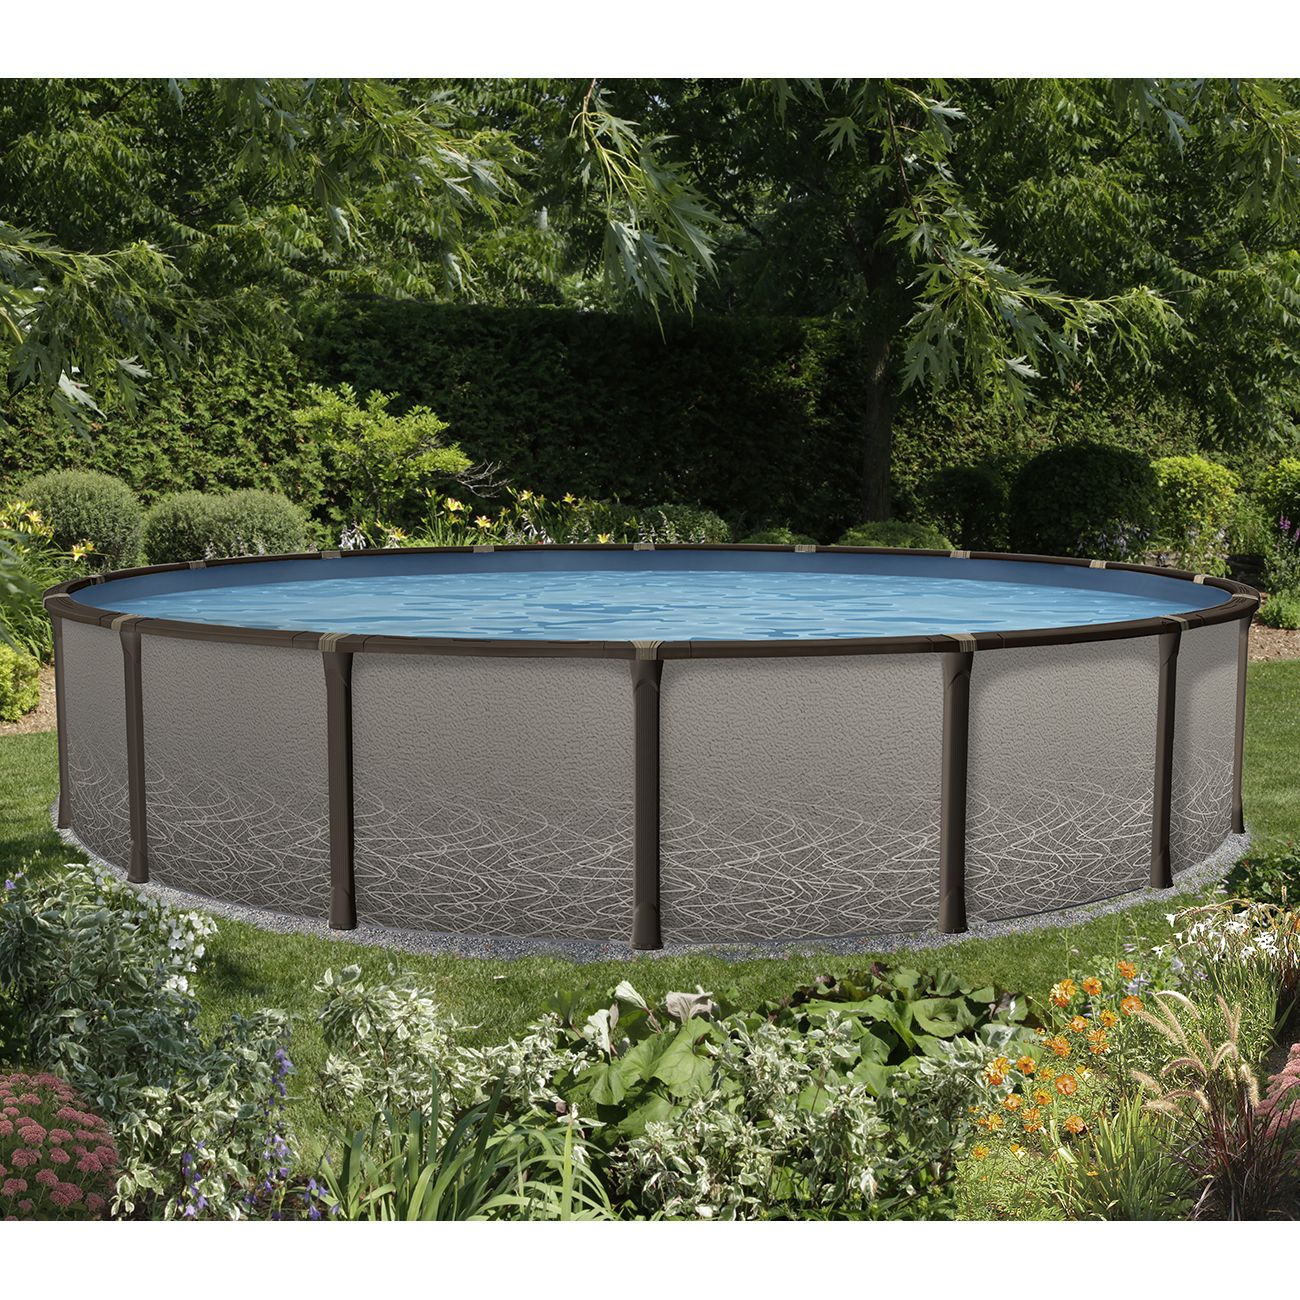 Element 18 round above ground pool pool supplies canada for Above ground pool equipment